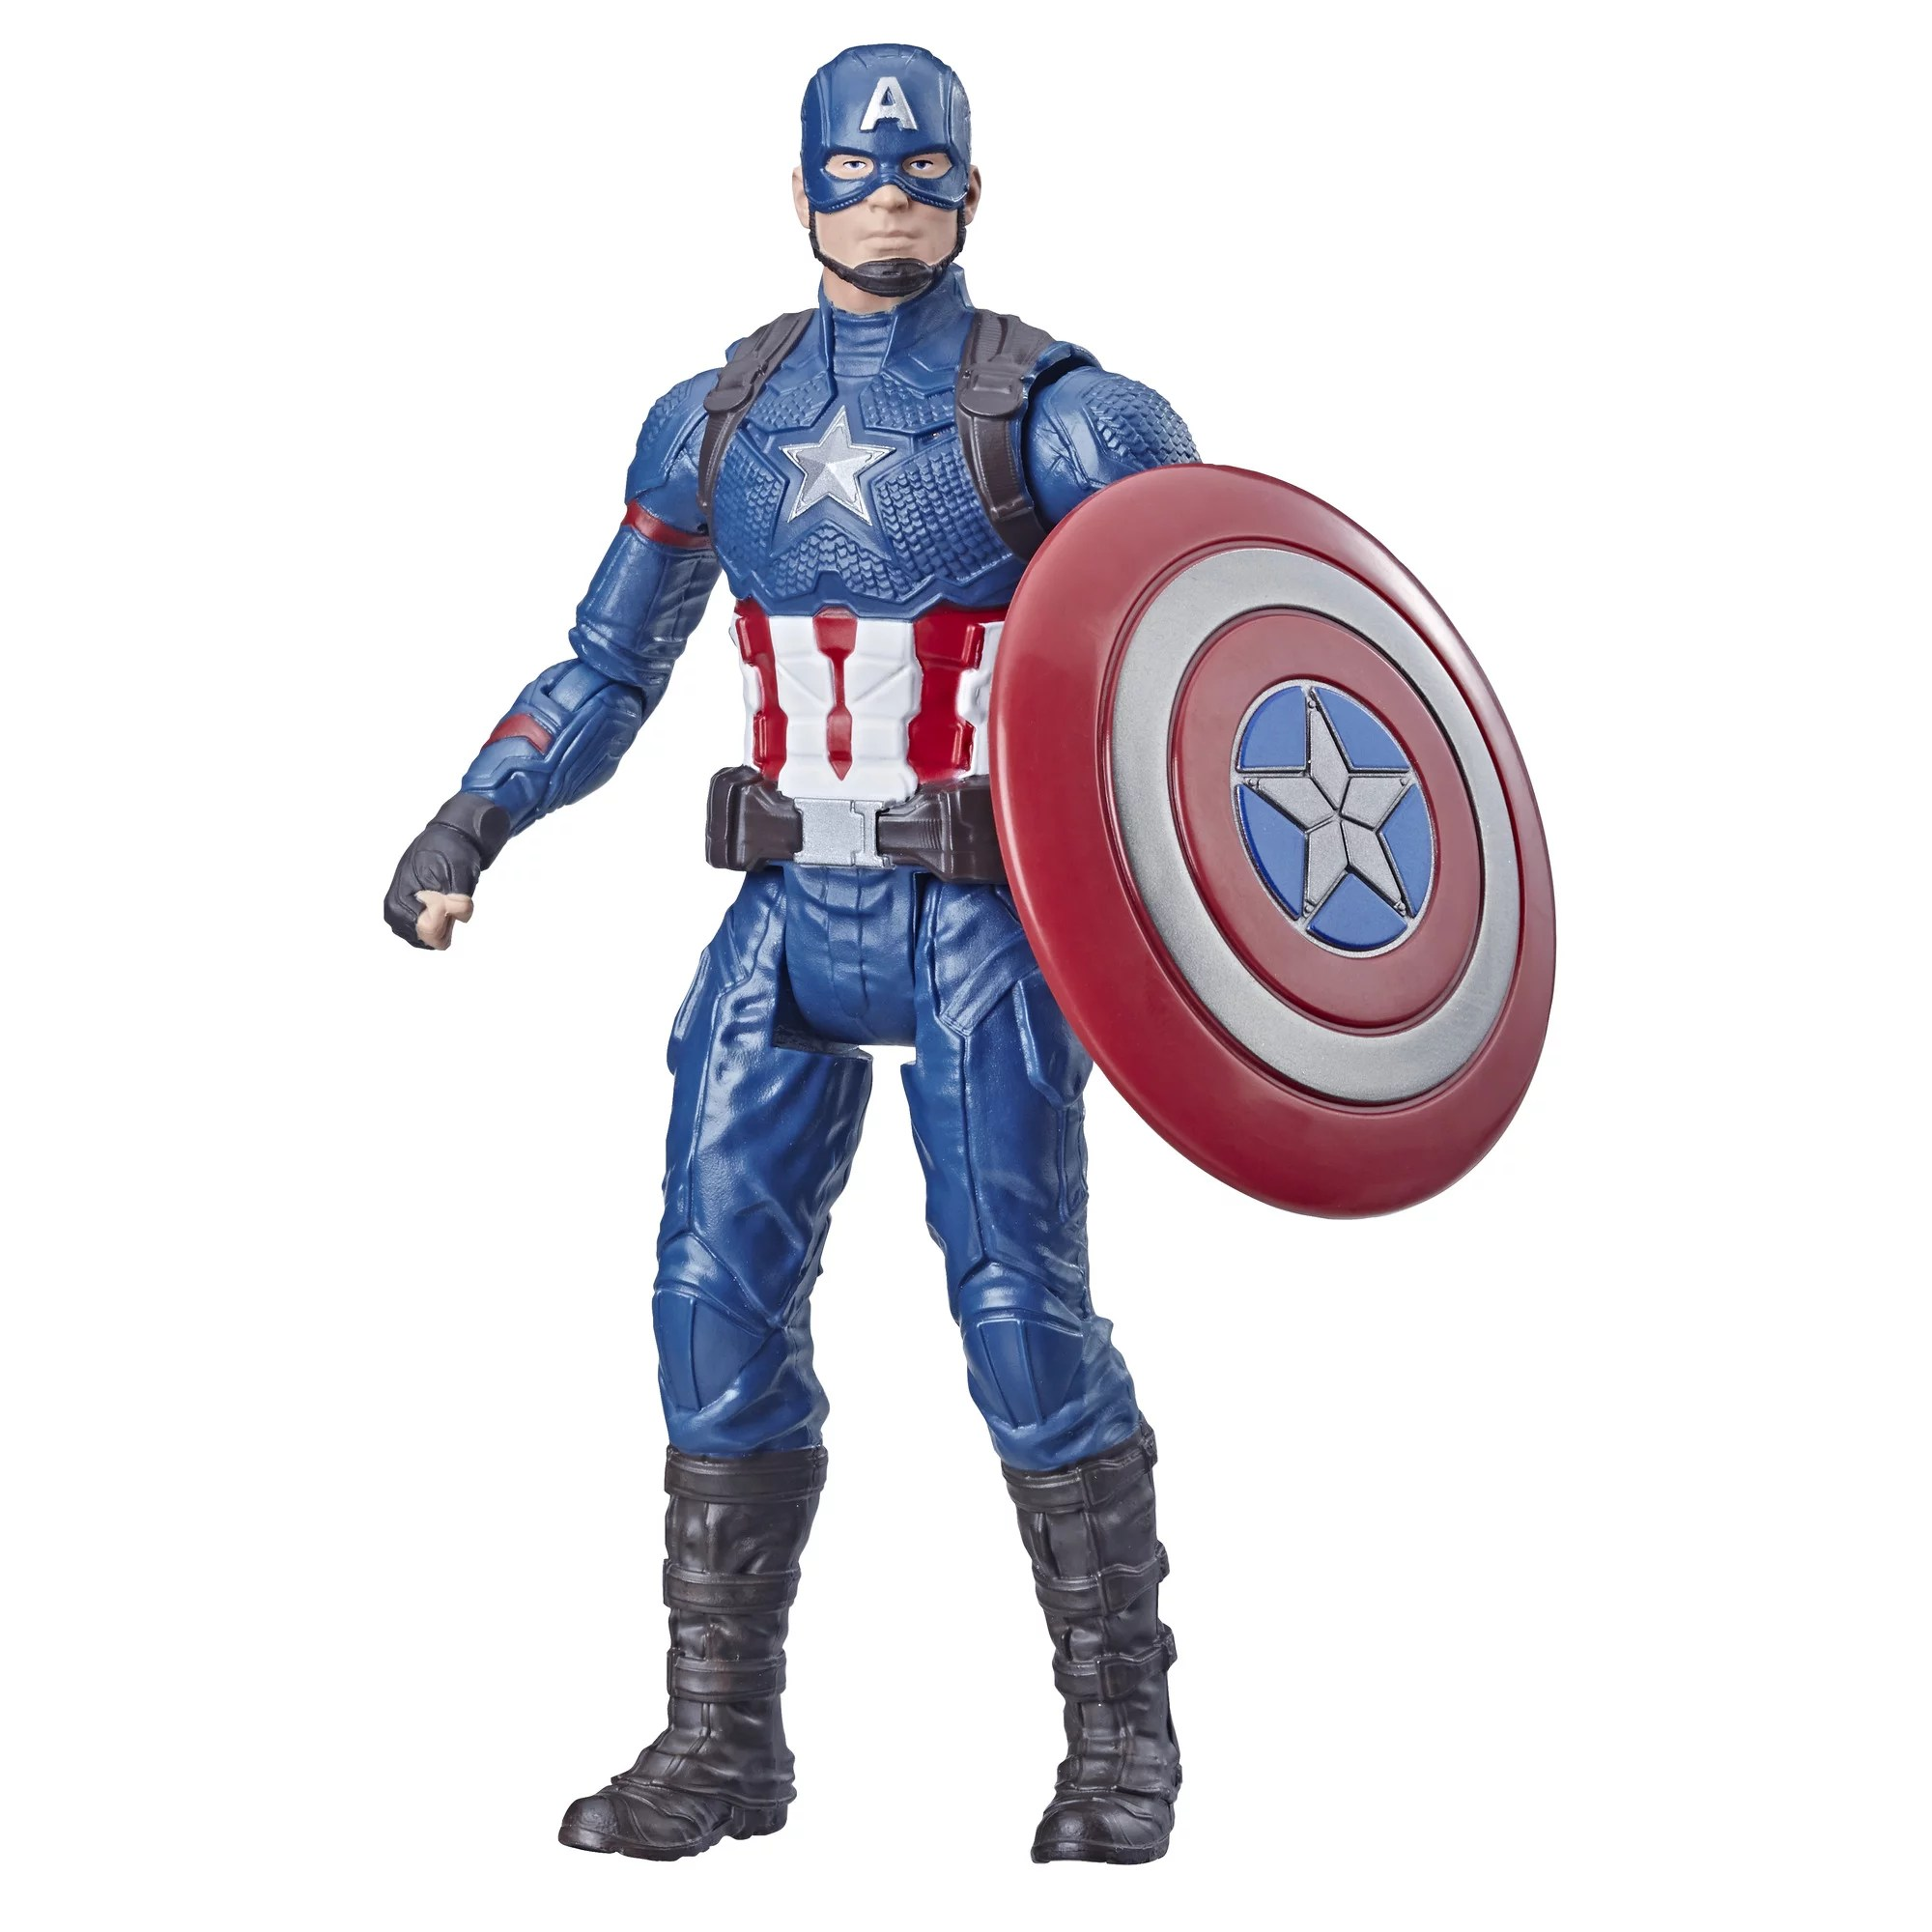 Walmart Superhero Action Figures Cheaper Than Retail Price Buy Clothing Accessories And Lifestyle Products For Women Men